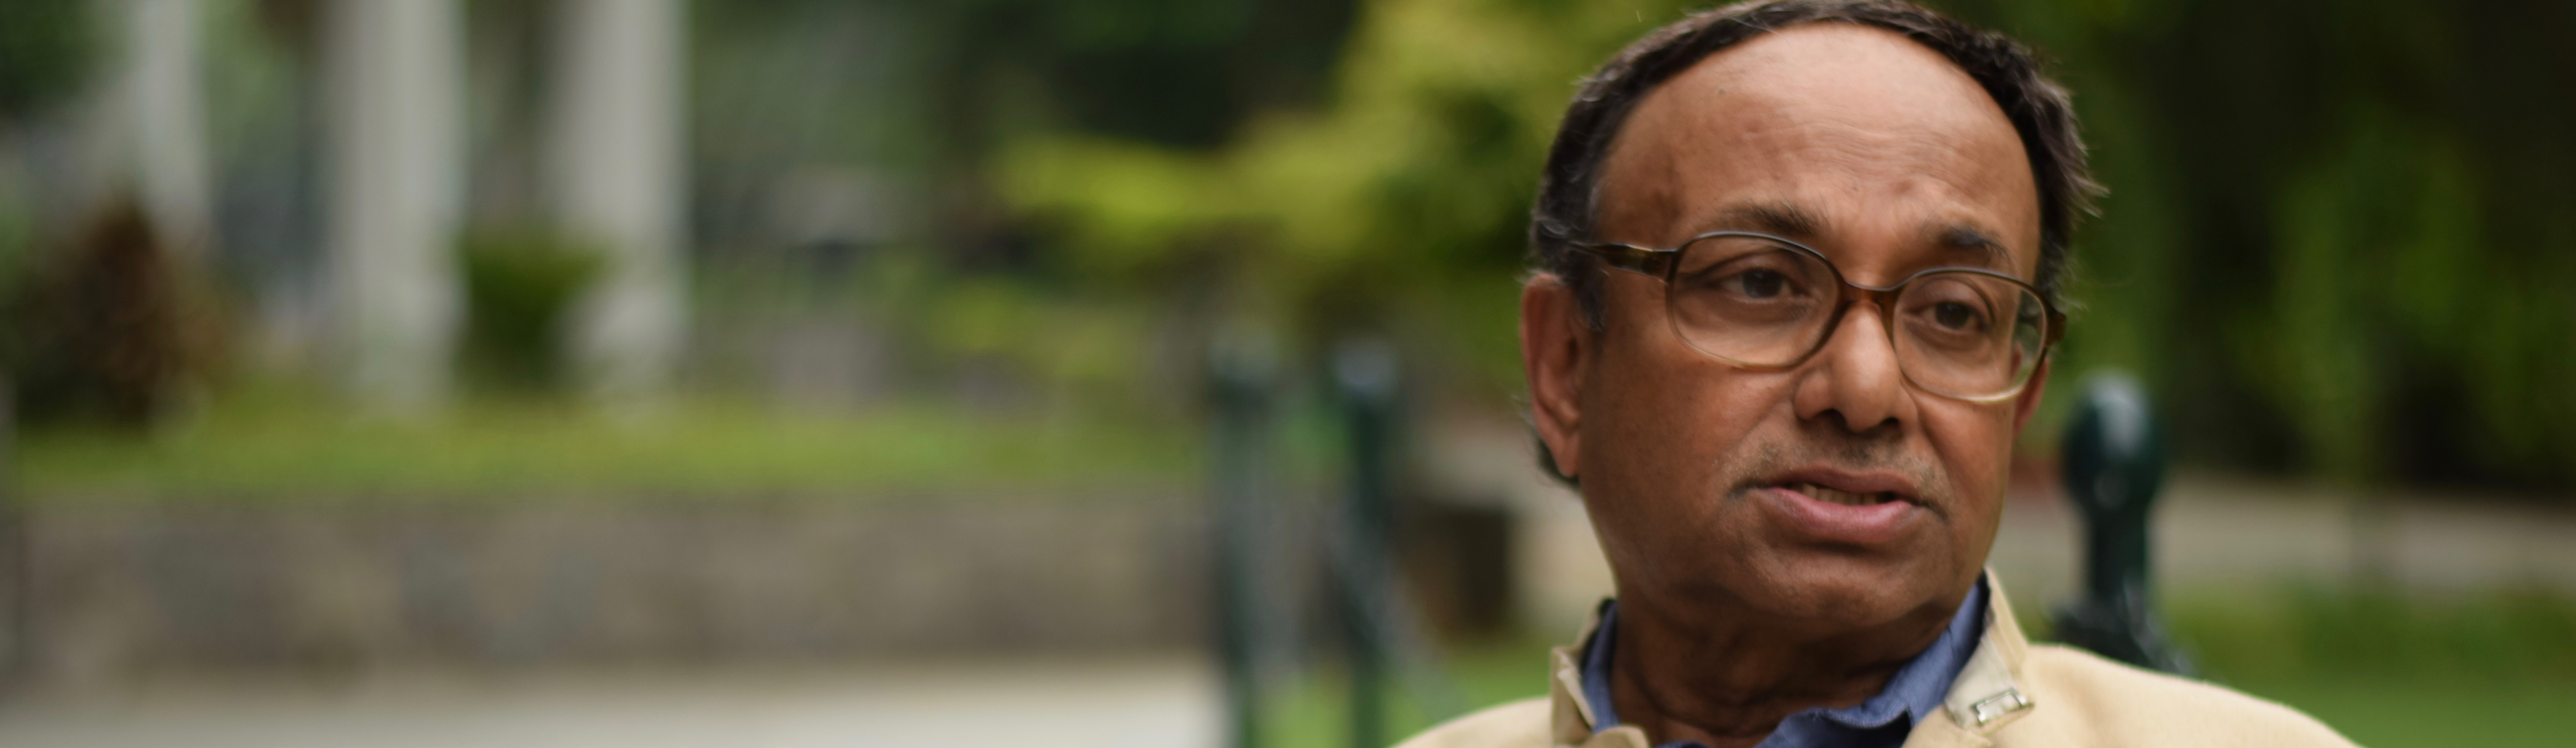 Interview: Pranab Bardhan on What the Modi Government Has – and Hasn't – Done So Far